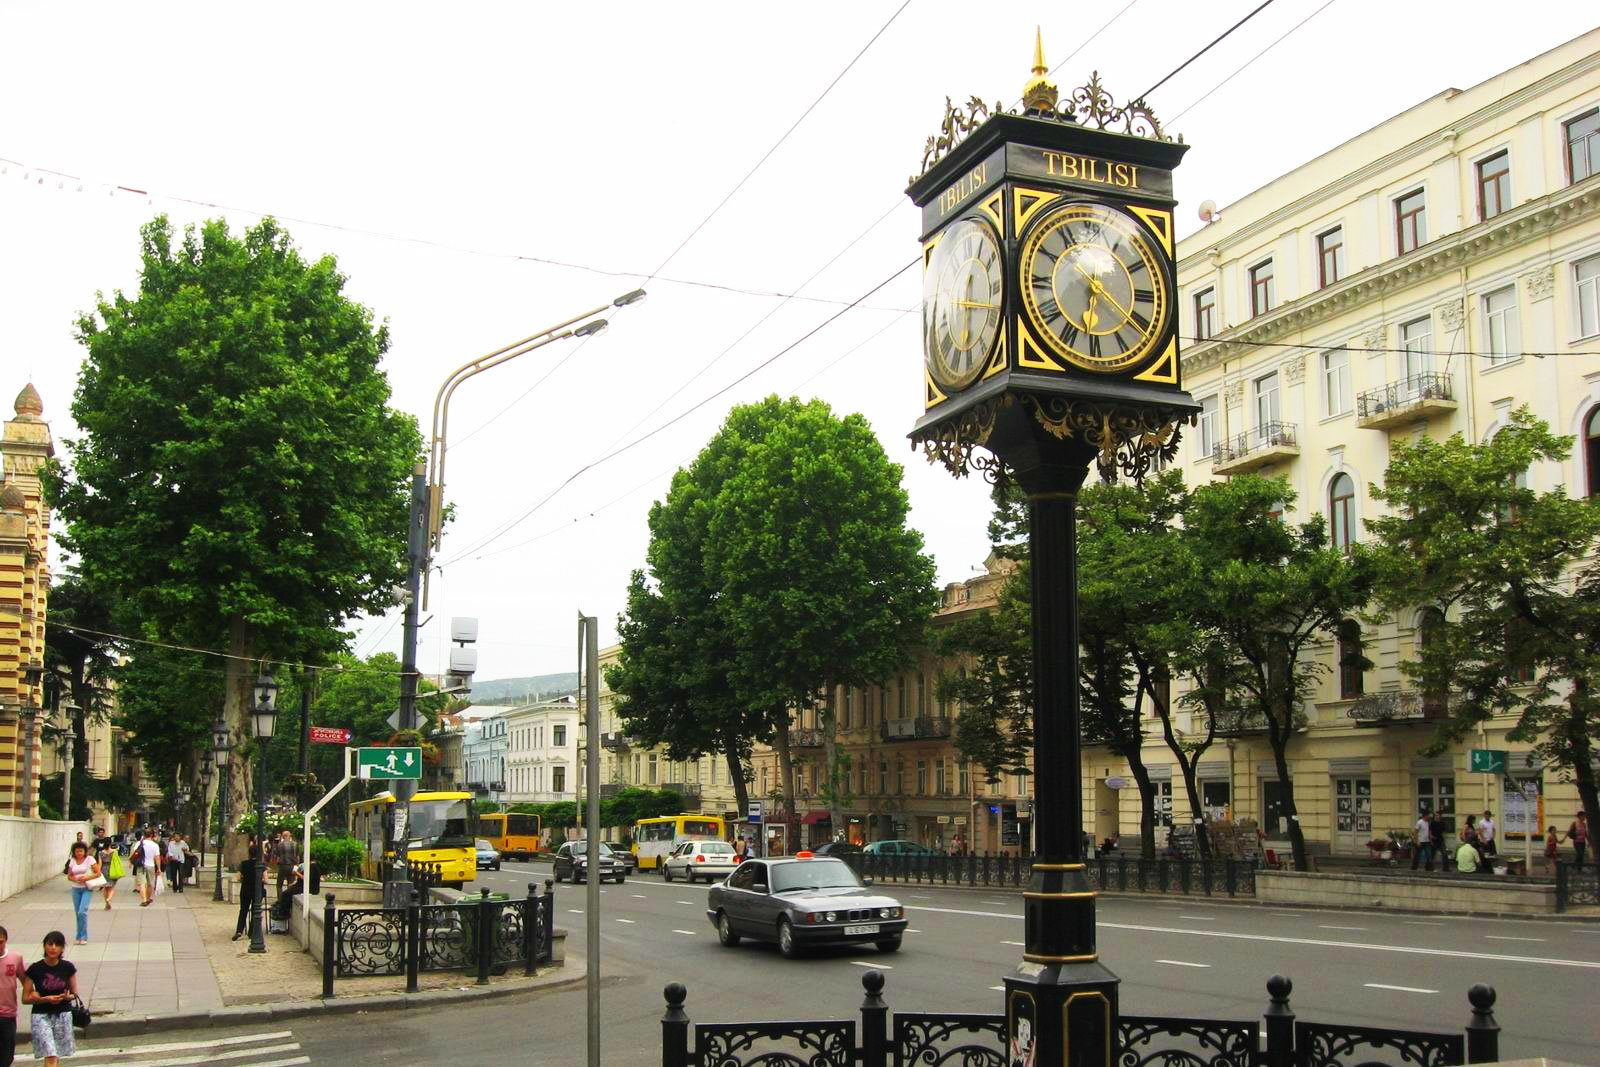 How to walk along Rustaveli Avenue in Tbilisi